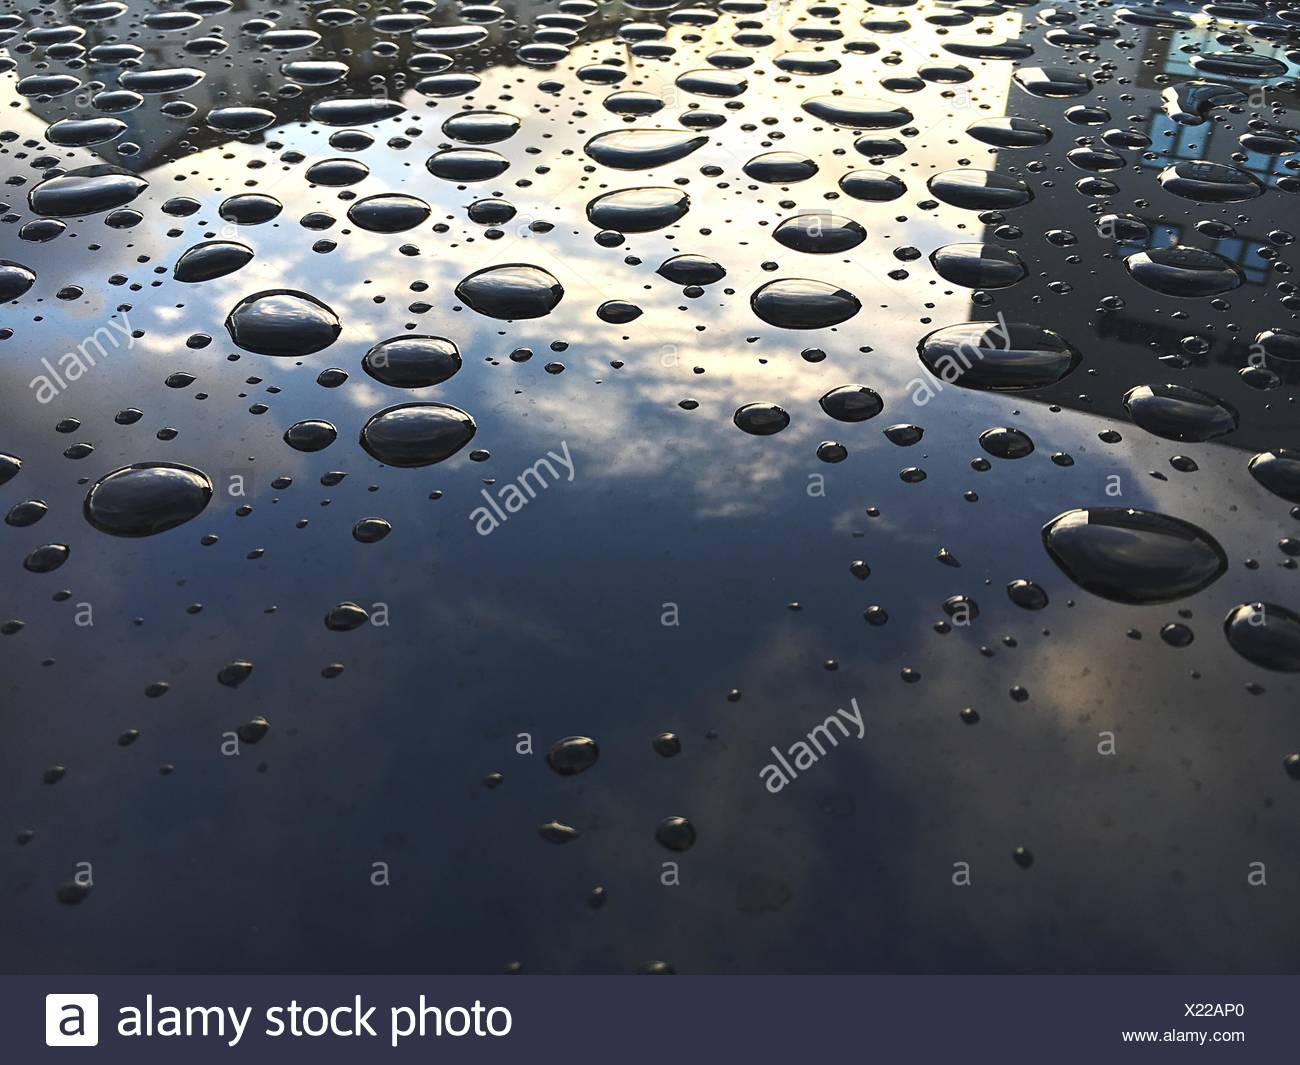 Close-Up Of Water Drops On Car Hood - Stock Image